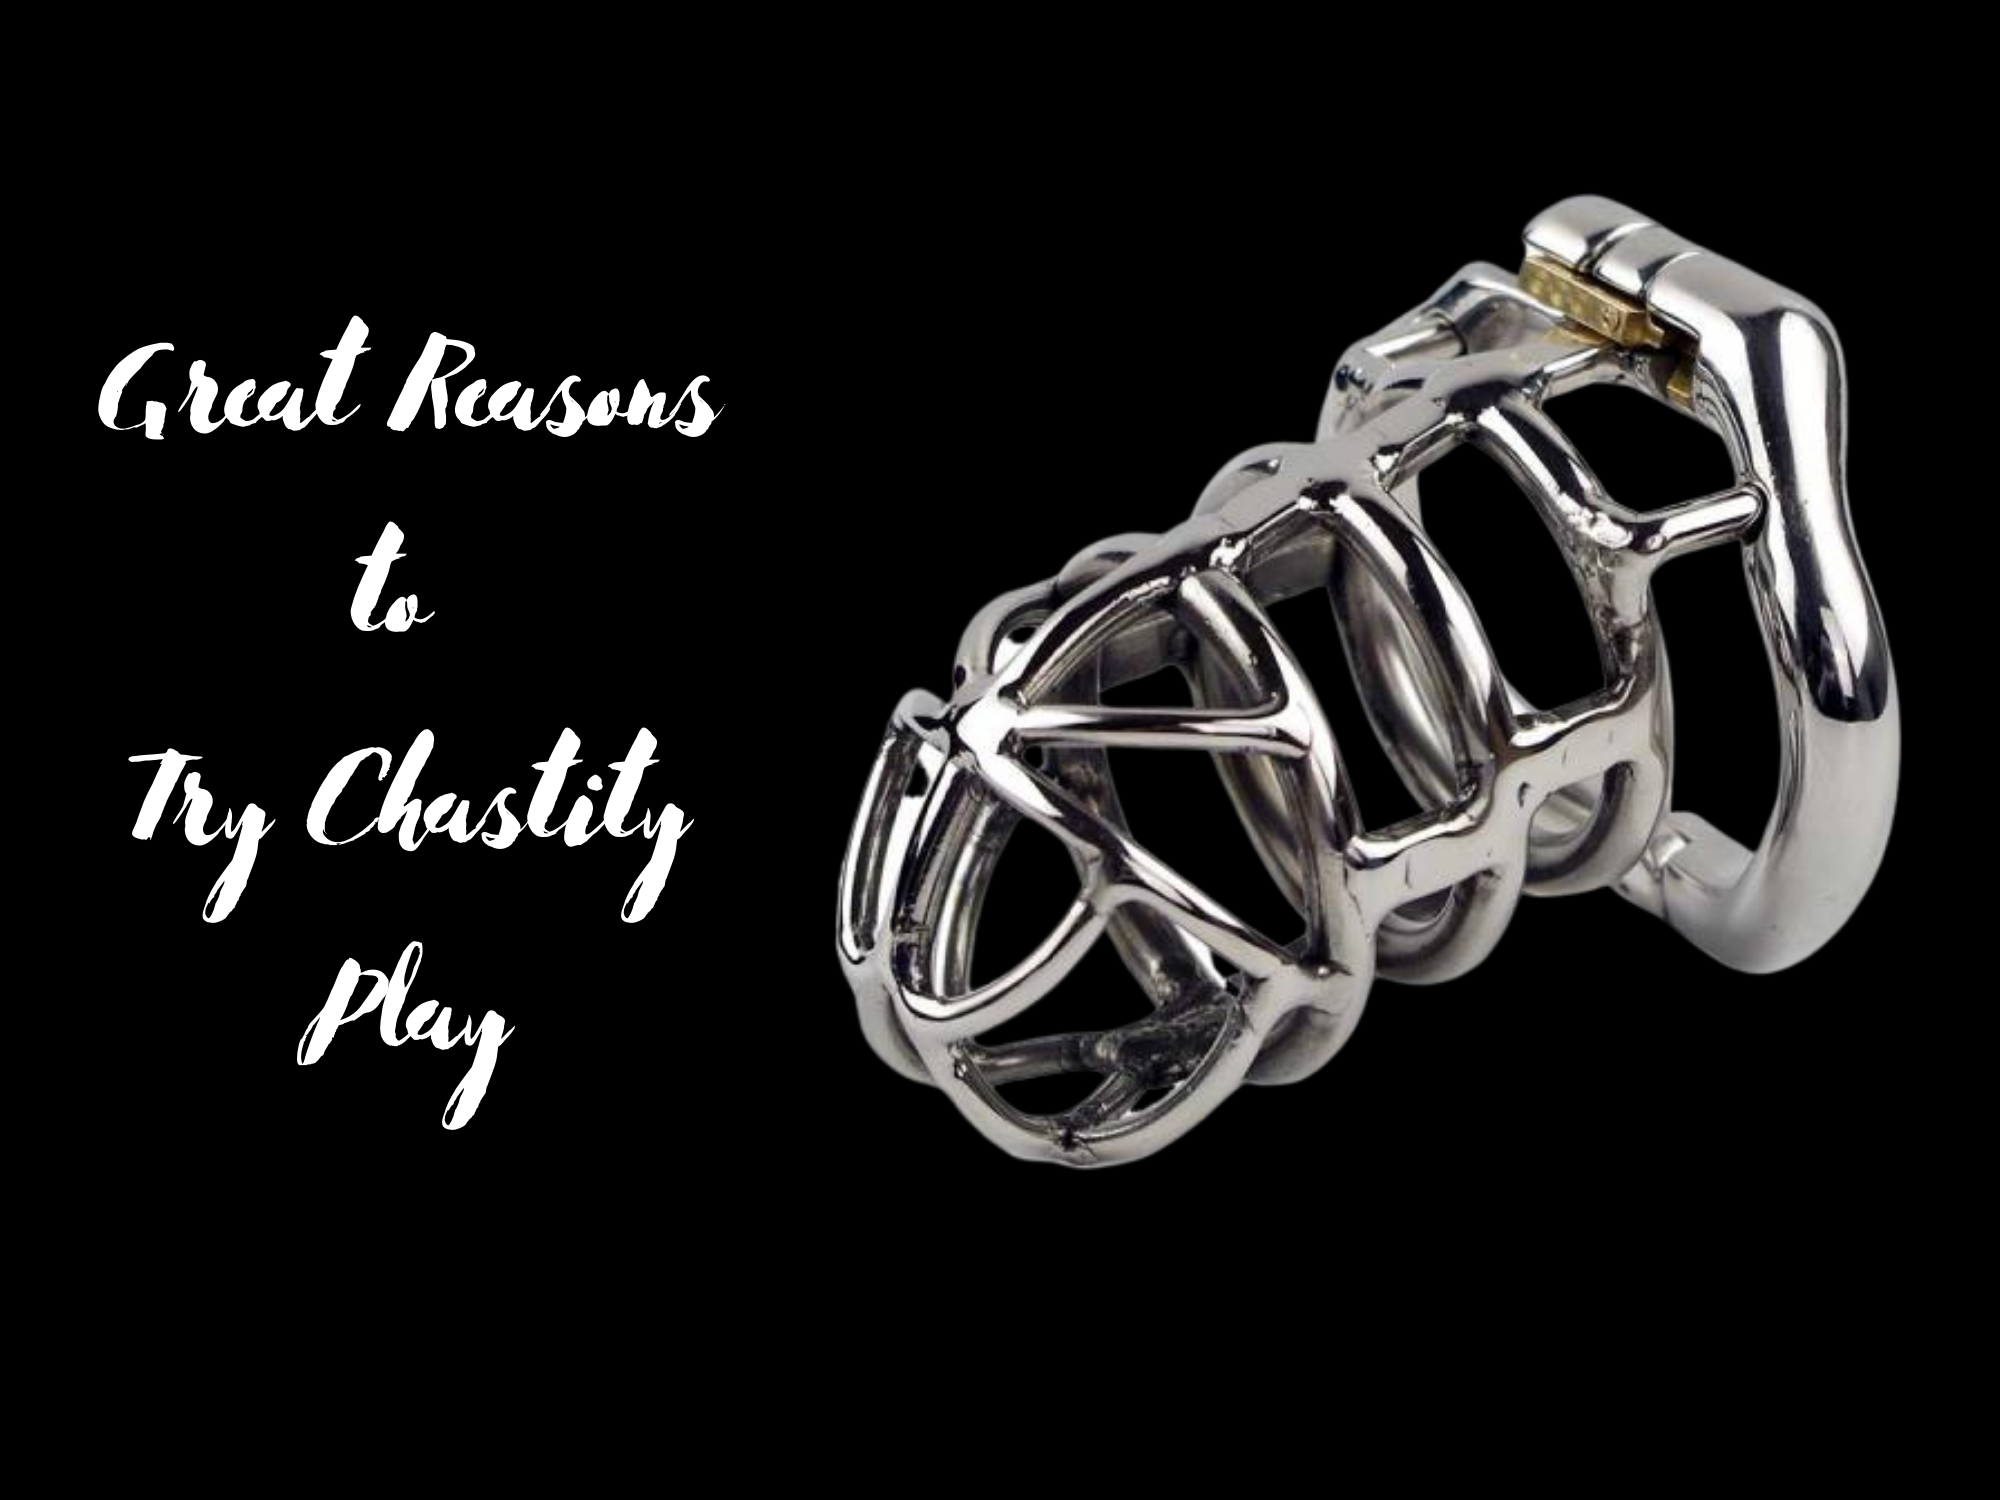 Great Reasons to Try Chastity Play